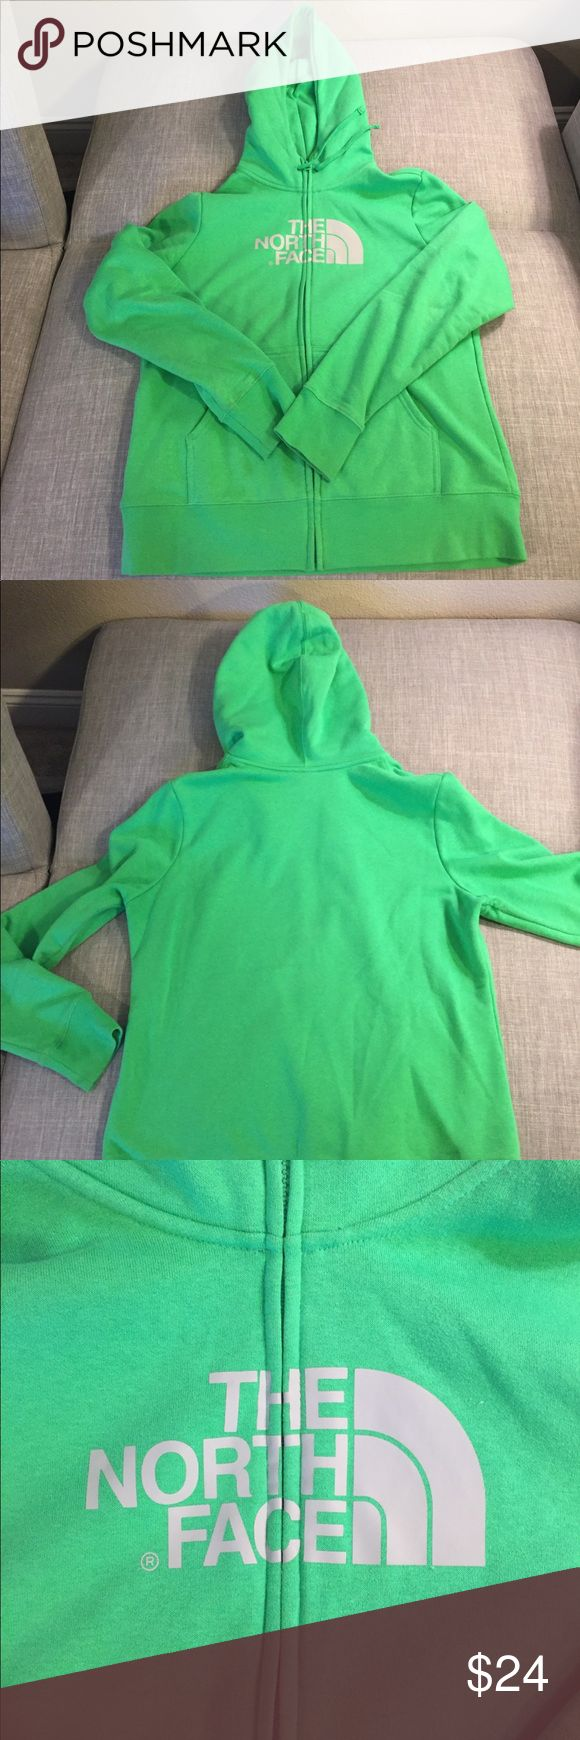 North Face Kelly Green Zip up Sweatshirt GUC Thick zip up sweatshirt, very little piling (shown in folder under arms), no fading North Face Tops Sweatshirts & Hoodies